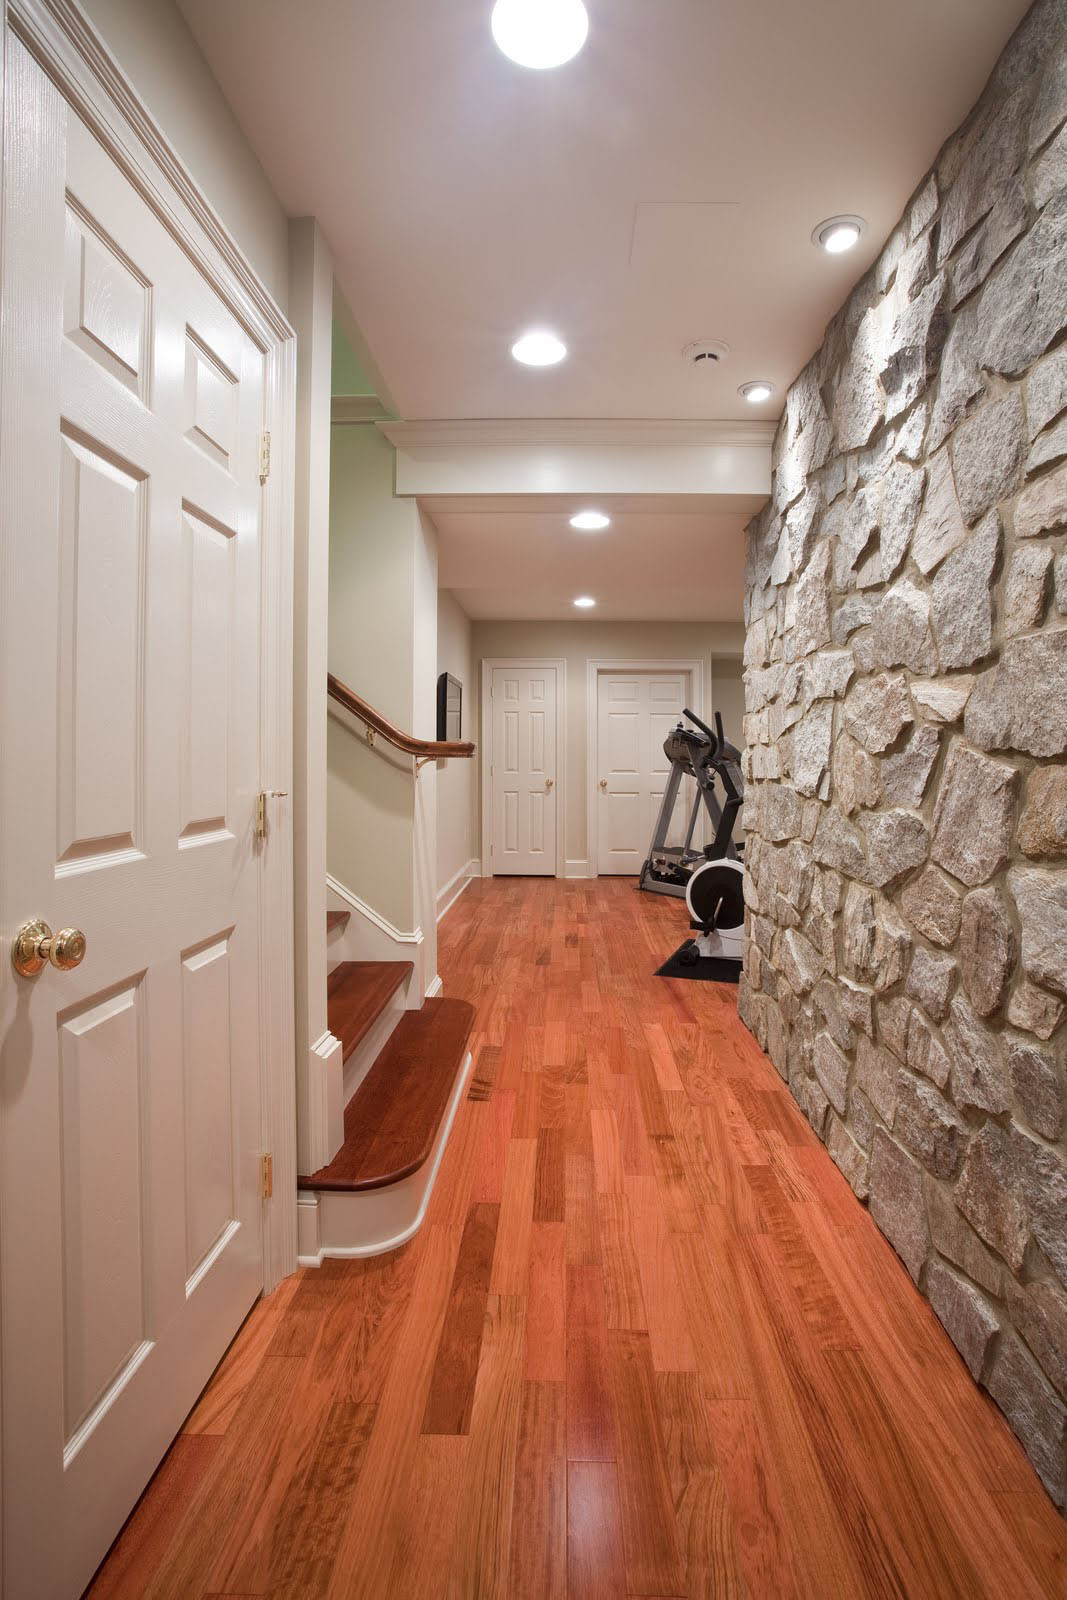 Basement Renovation With Rustic Stone Walls  iDesignArch  Interior Design Architecture